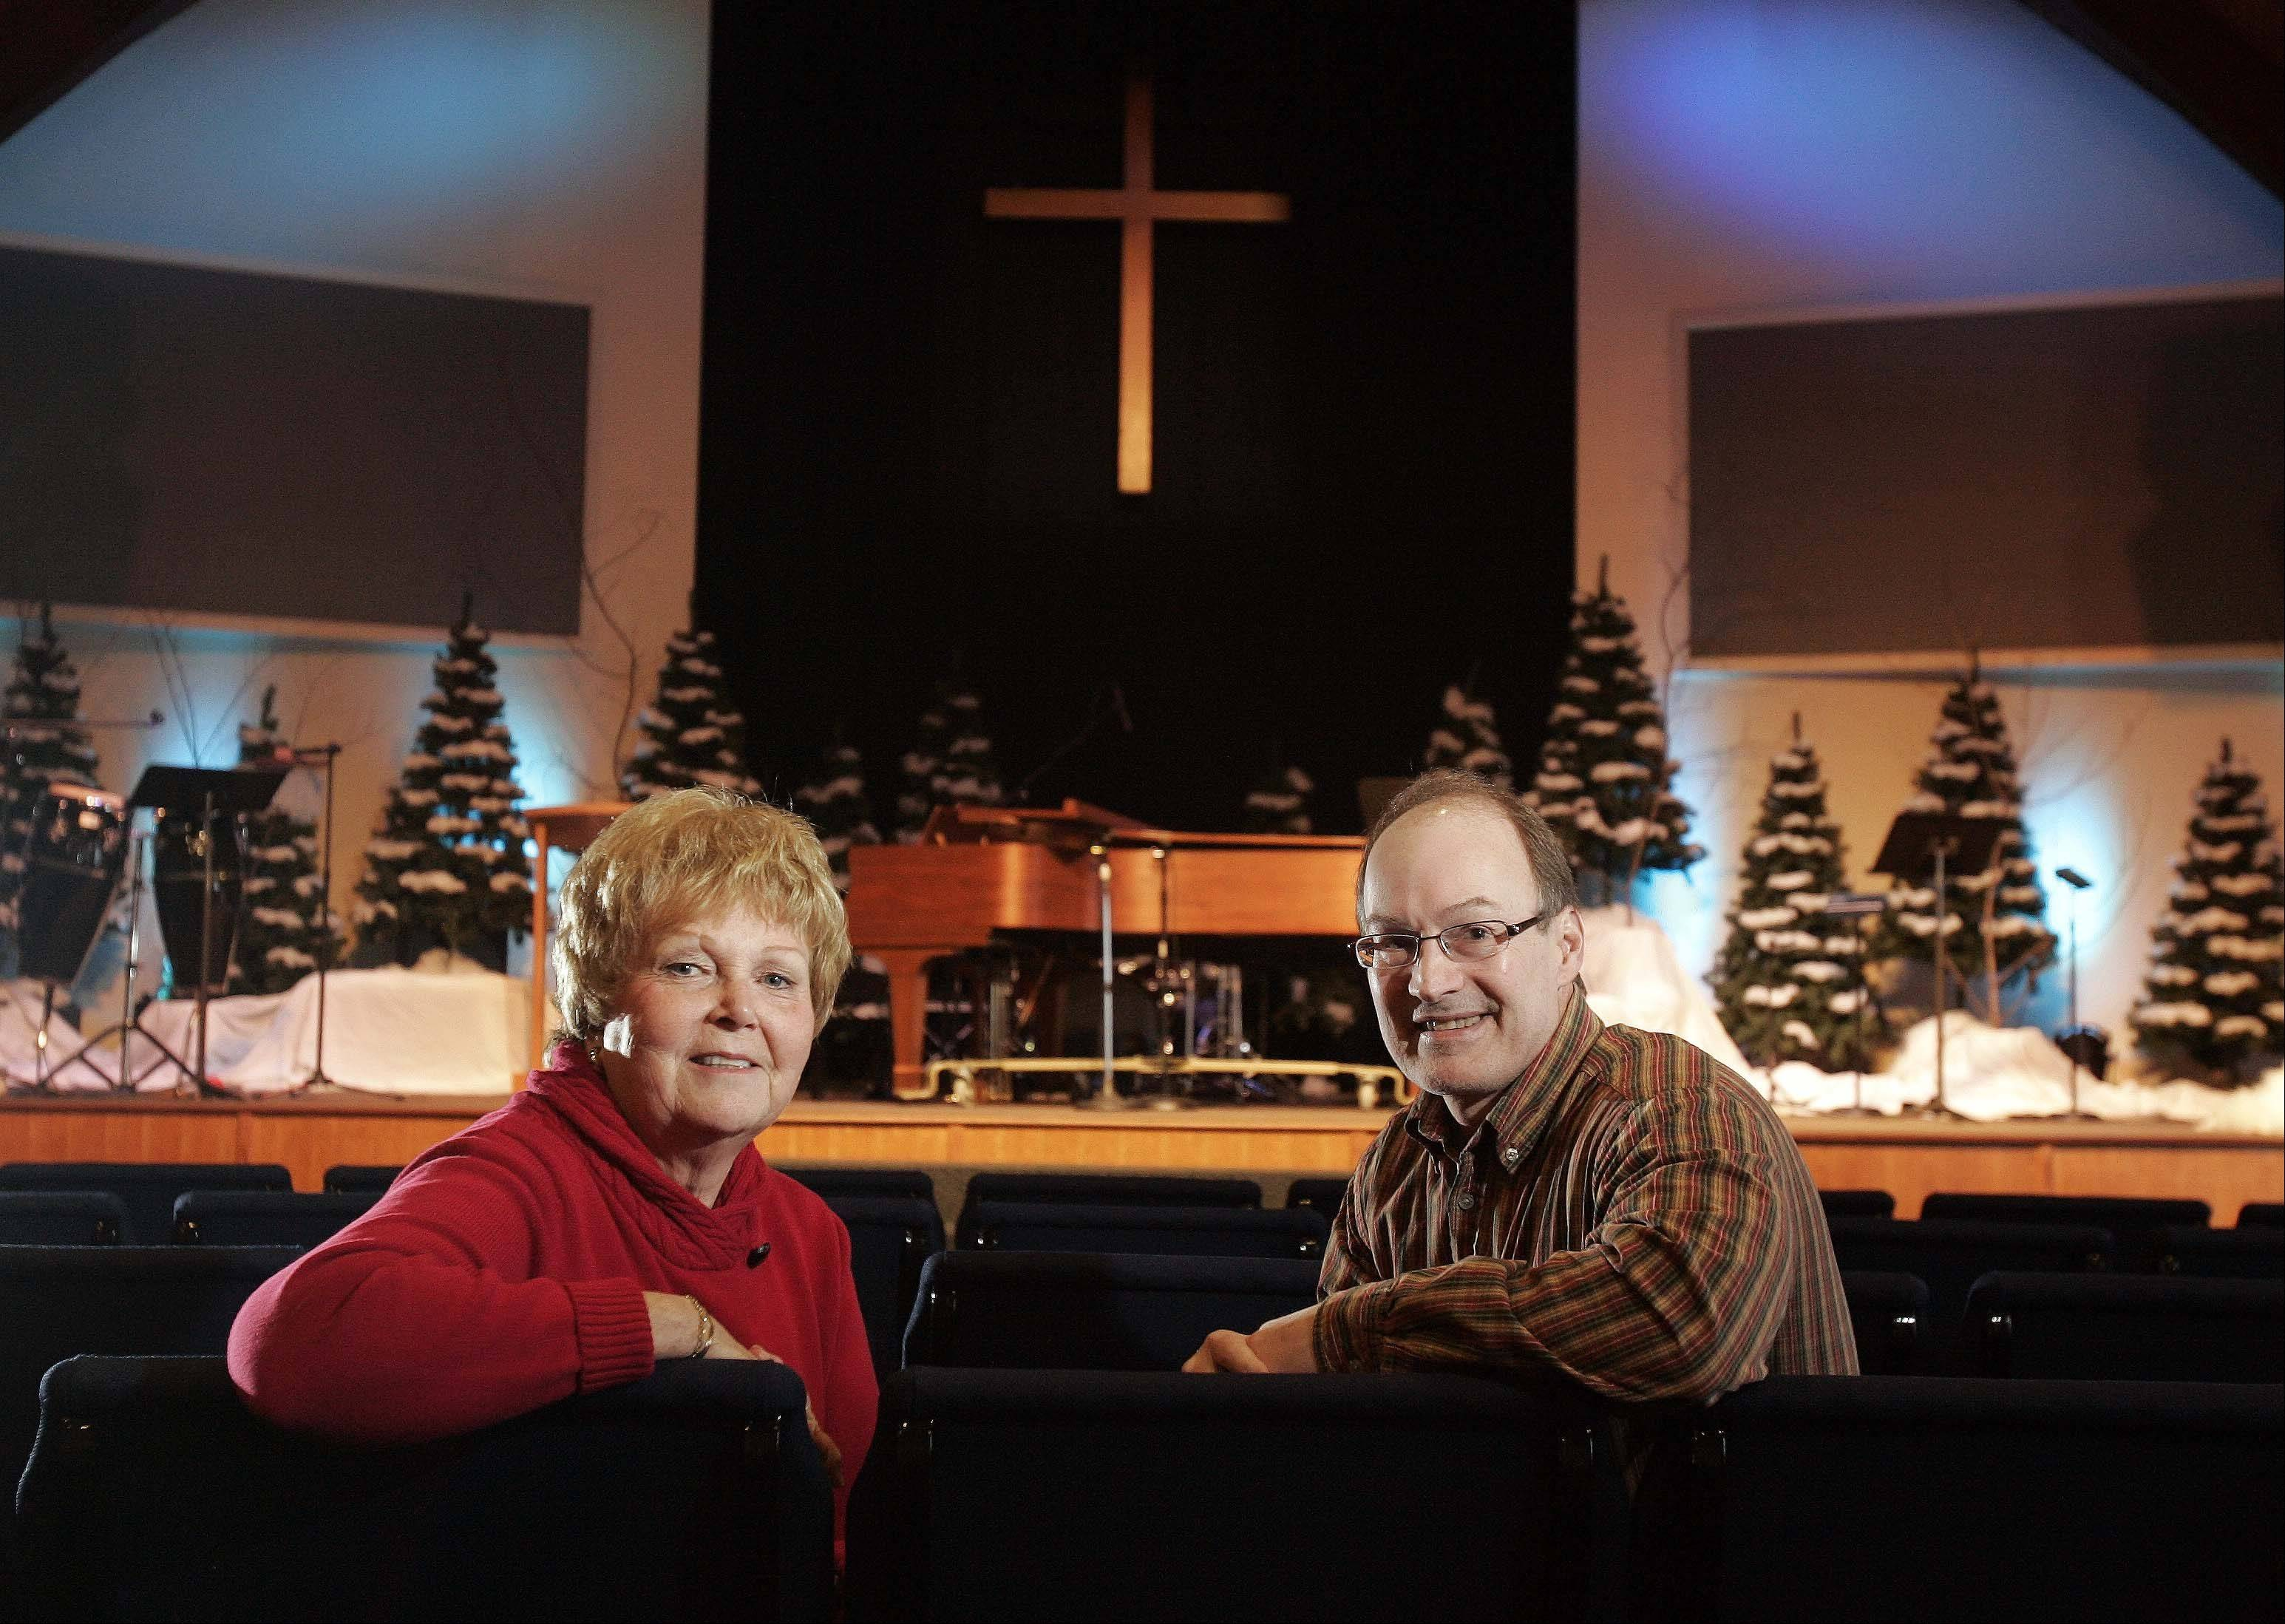 Becky Towner of Elgin is the chairwoman of 175th anniversary committee of First Baptist Church in Elgin. Here she is pictured with Senior Pastor Greg Huguley, who�s been at the church for five years.